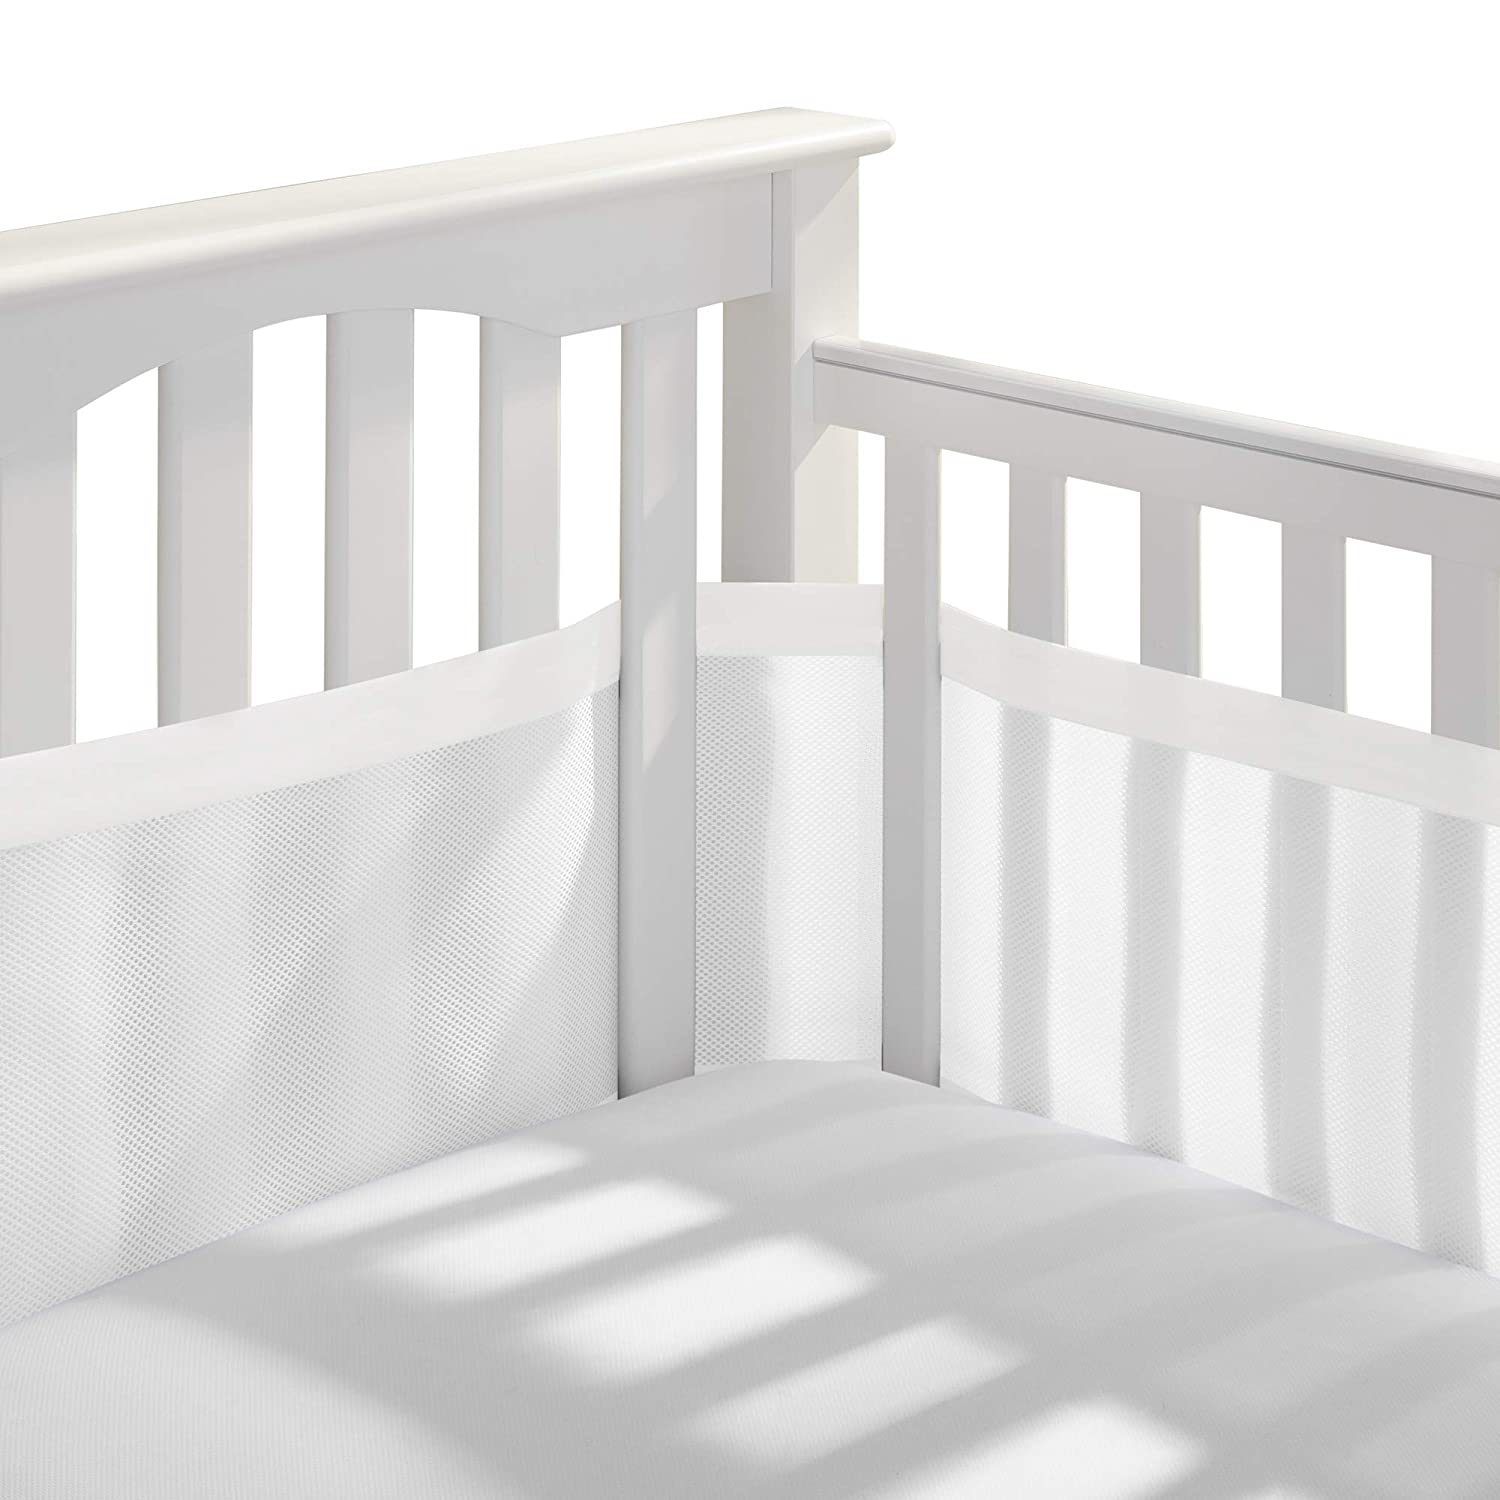 BreathableBaby Deluxe Patented, Safer for Baby, Anti-Bumper, Non-Padded, Breathable Mesh Crib Liner – White and Muslin Trim